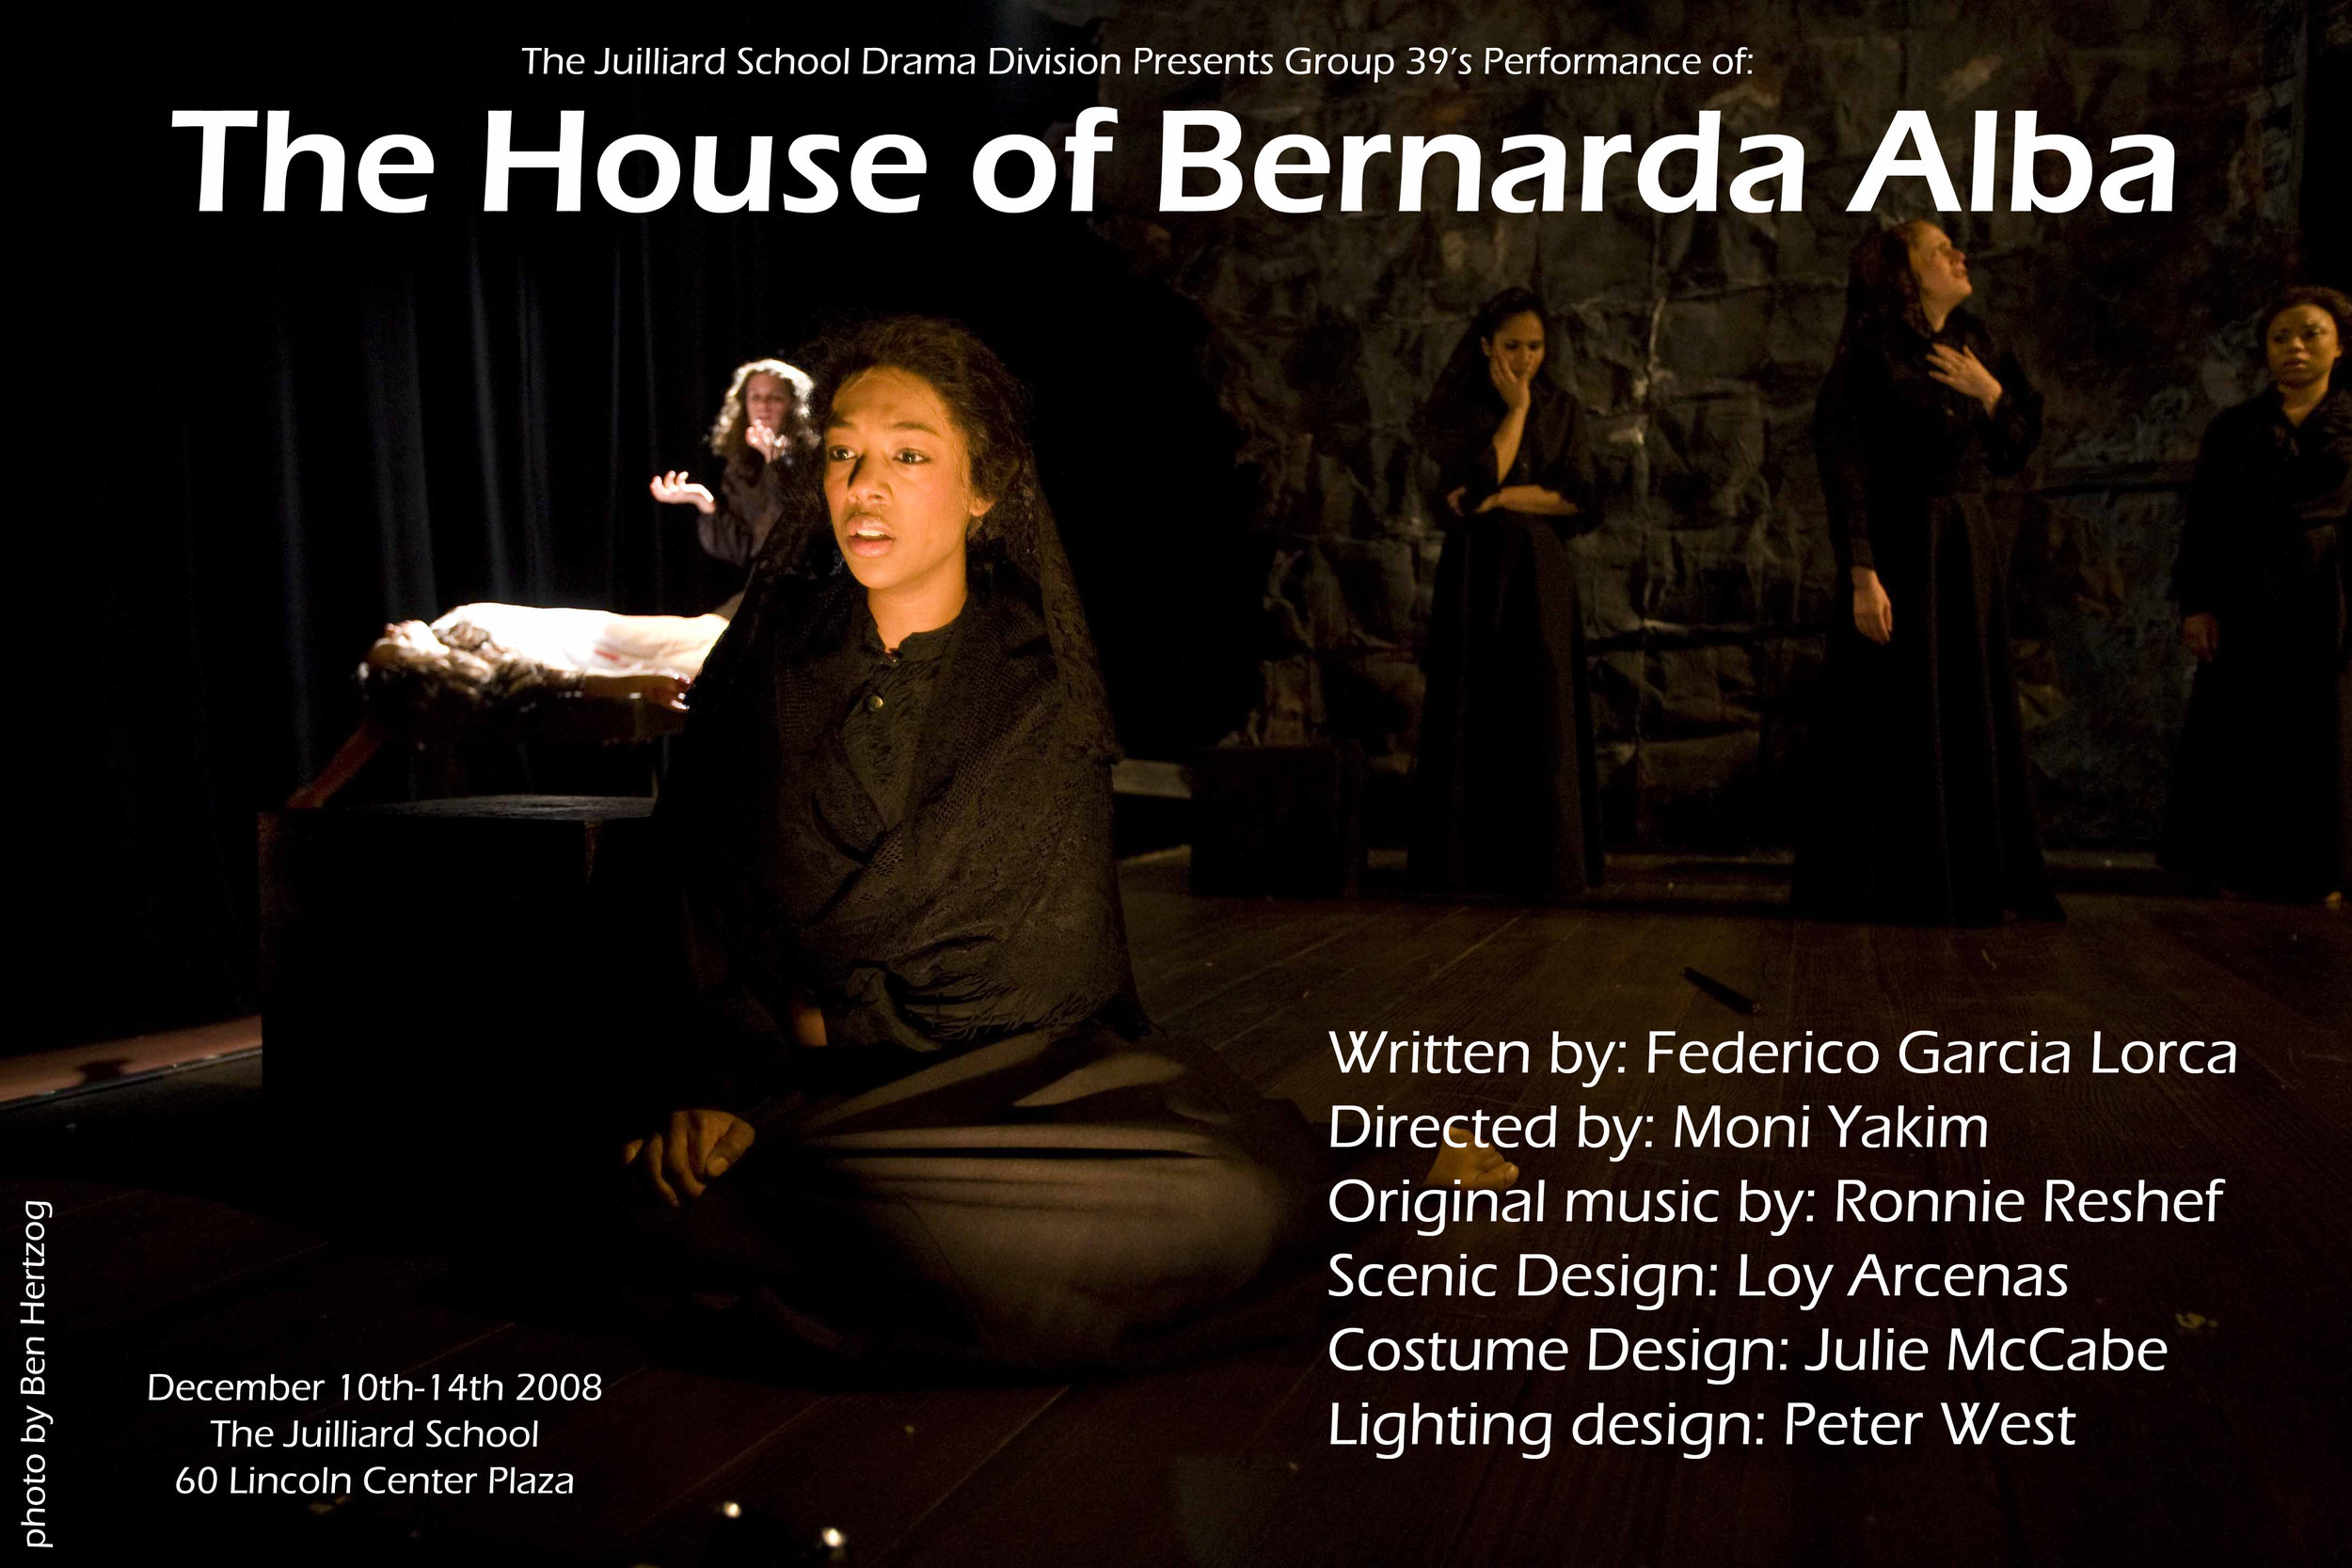 The House of Bernarda Alba - Juilliard Drama School